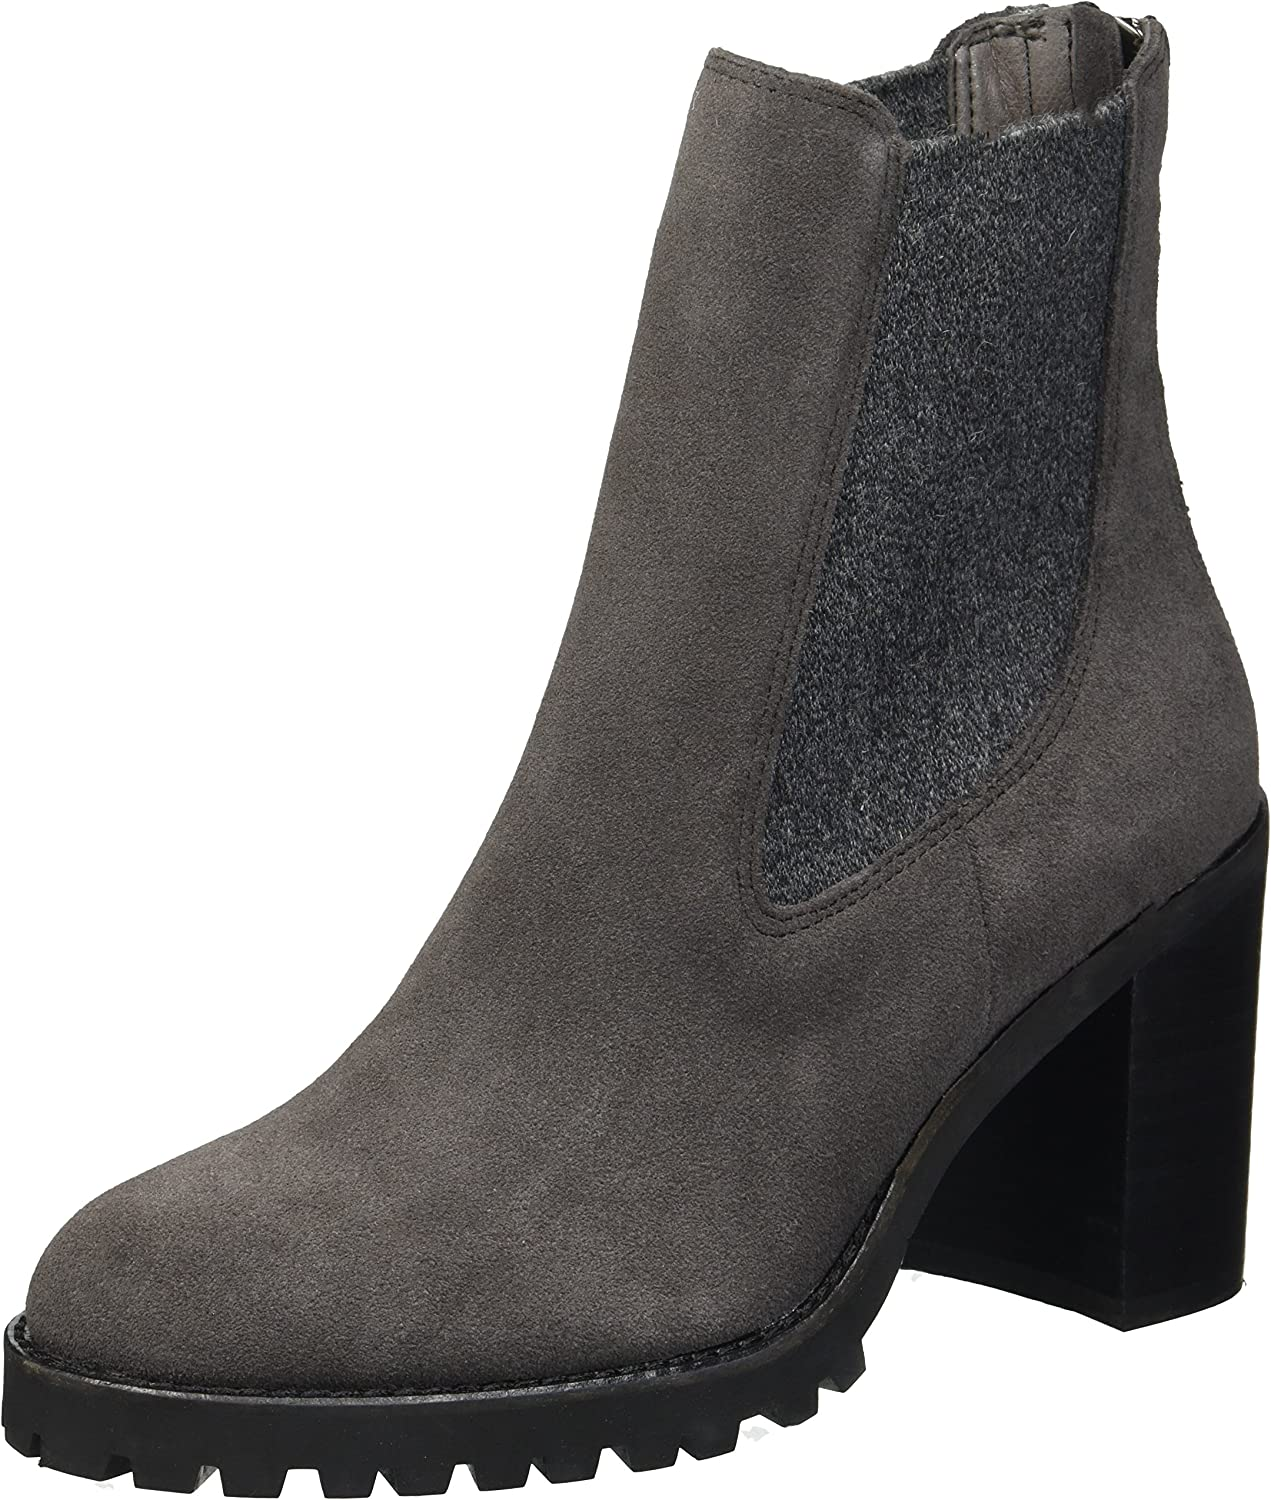 Chinese Laundry Women's Jersey Ankle Boot